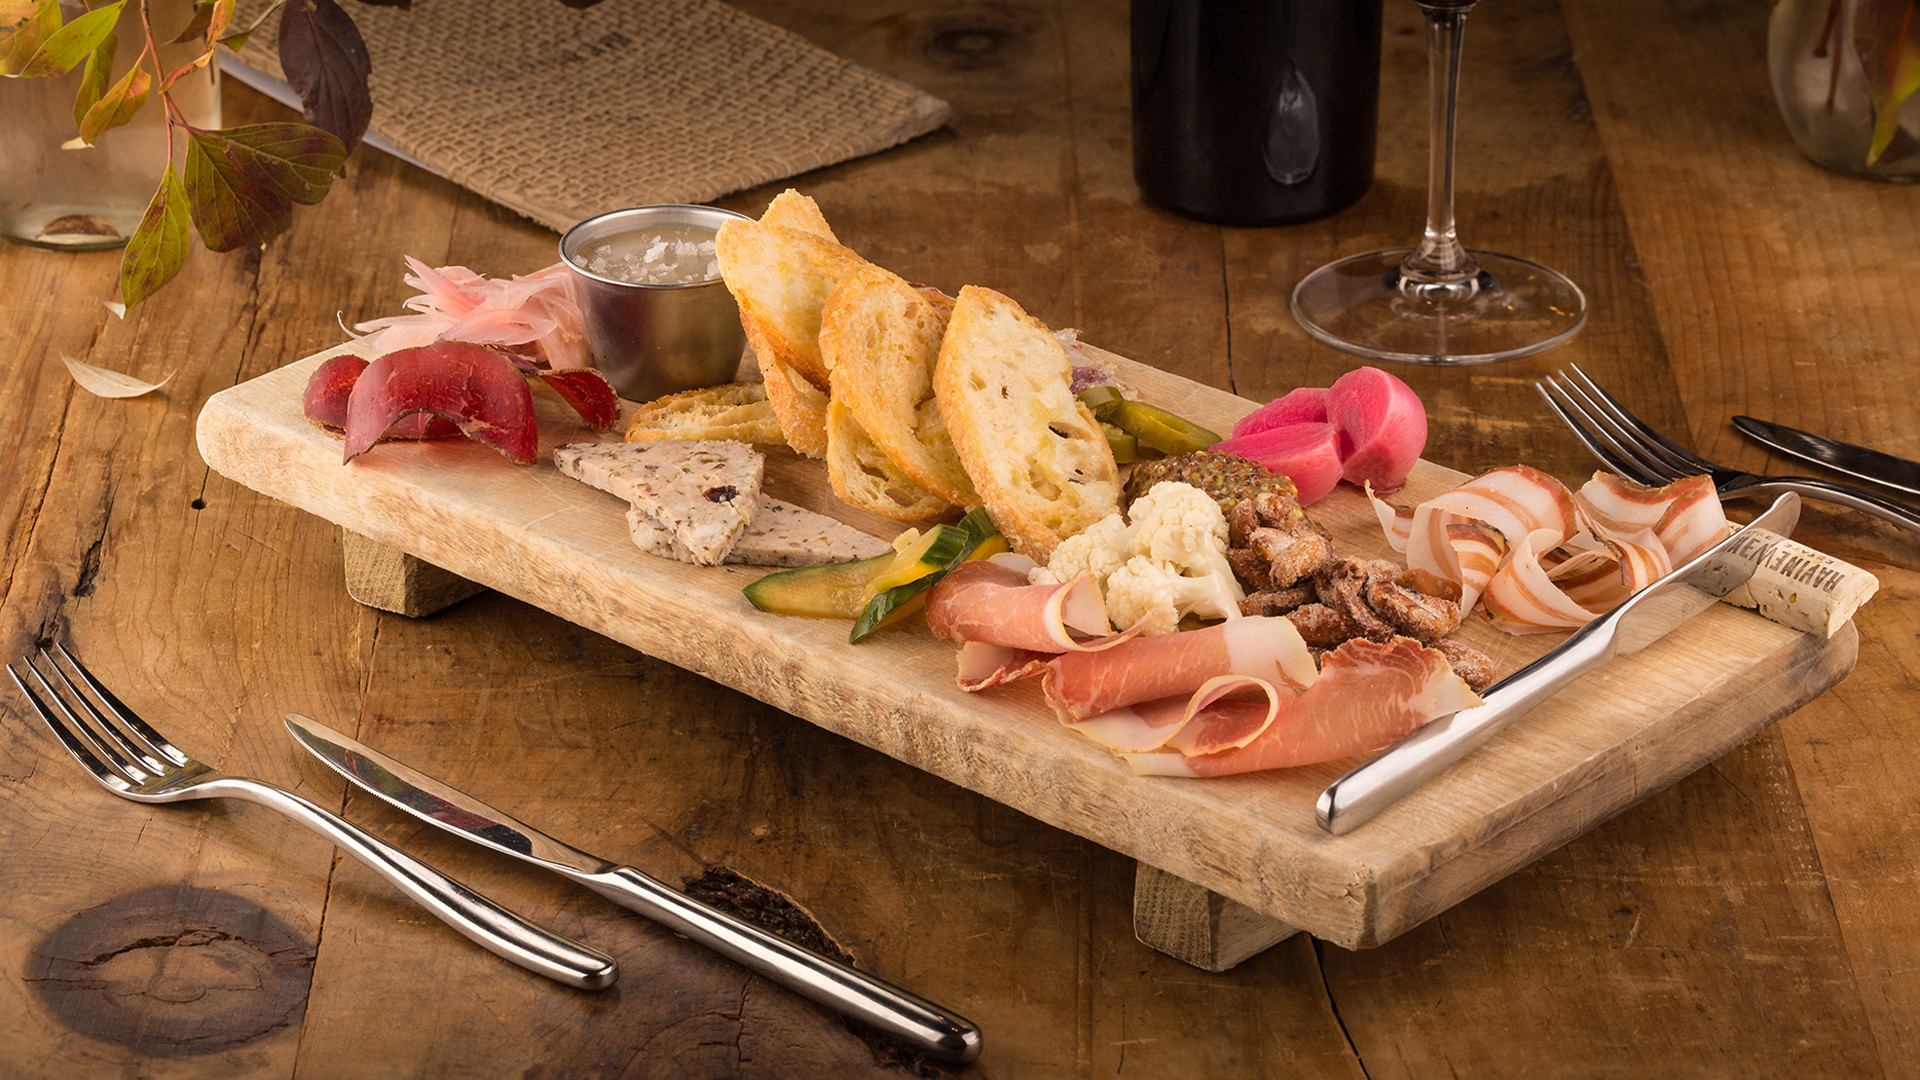 The best wineries in Niagara-on-the-Lake | Charcuterie tasting at Ravine Vineyard Estate Winery